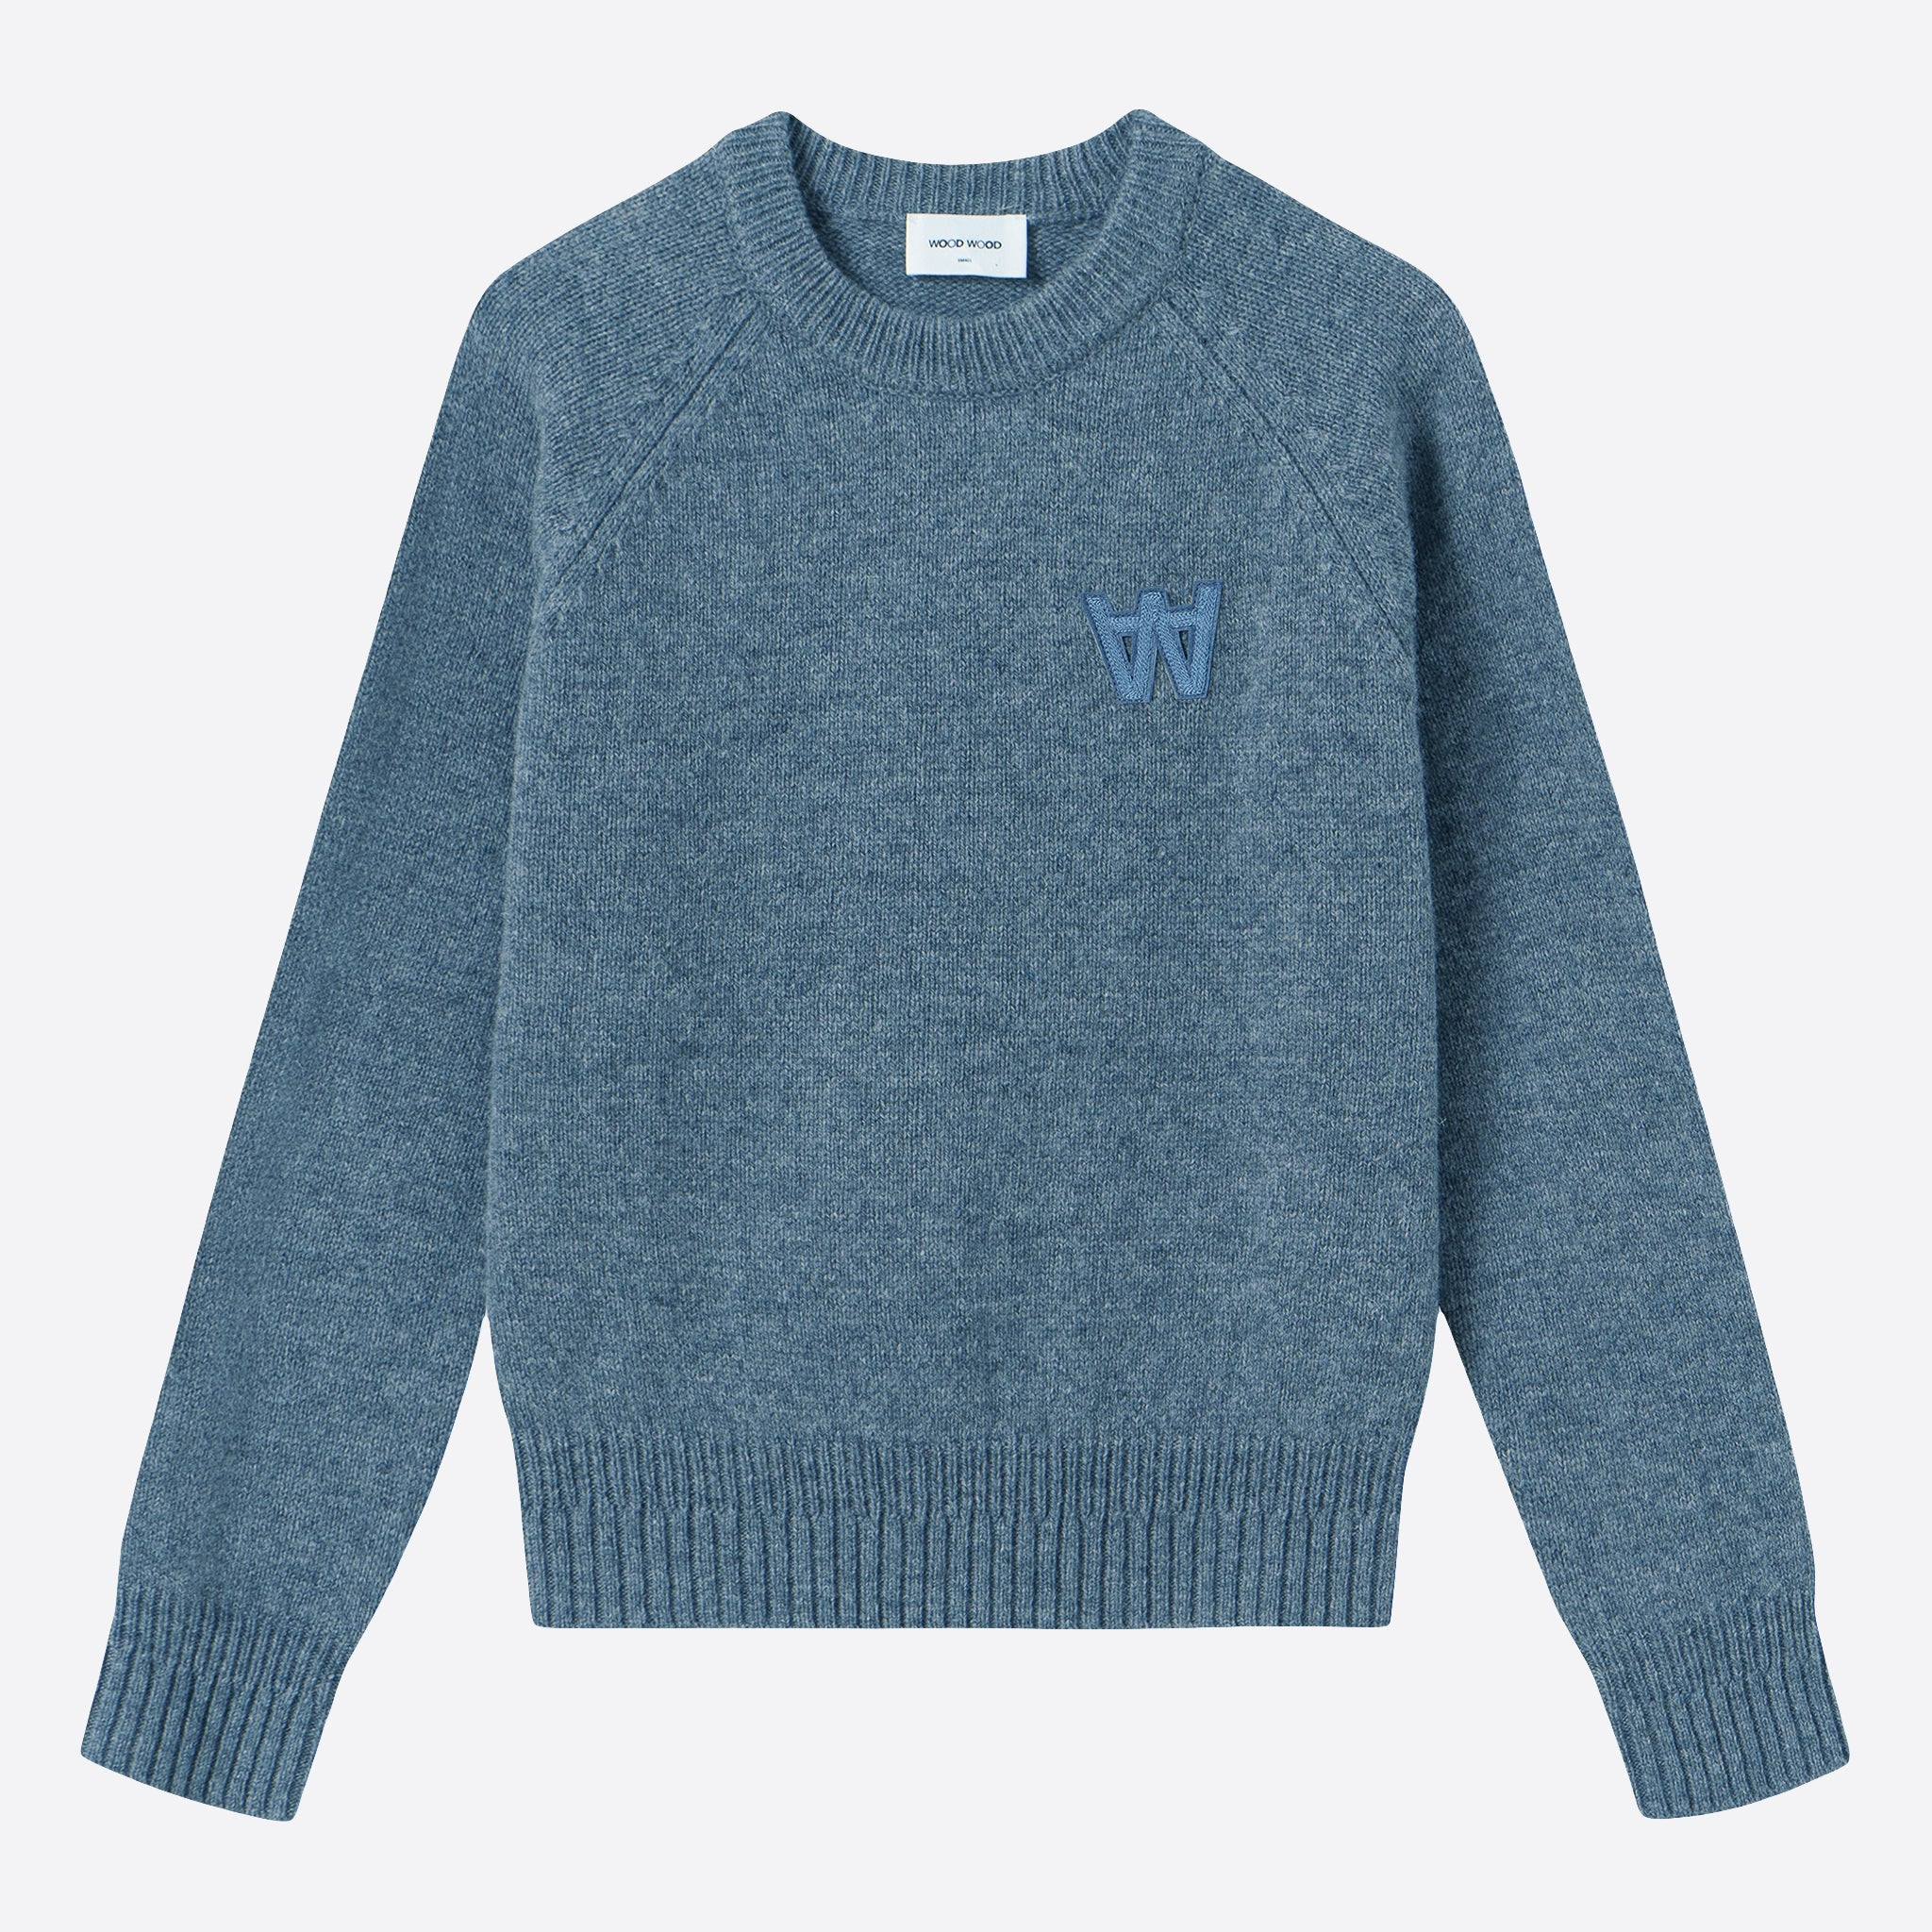 Wood Wood Asta Sweater in Dusty Blue